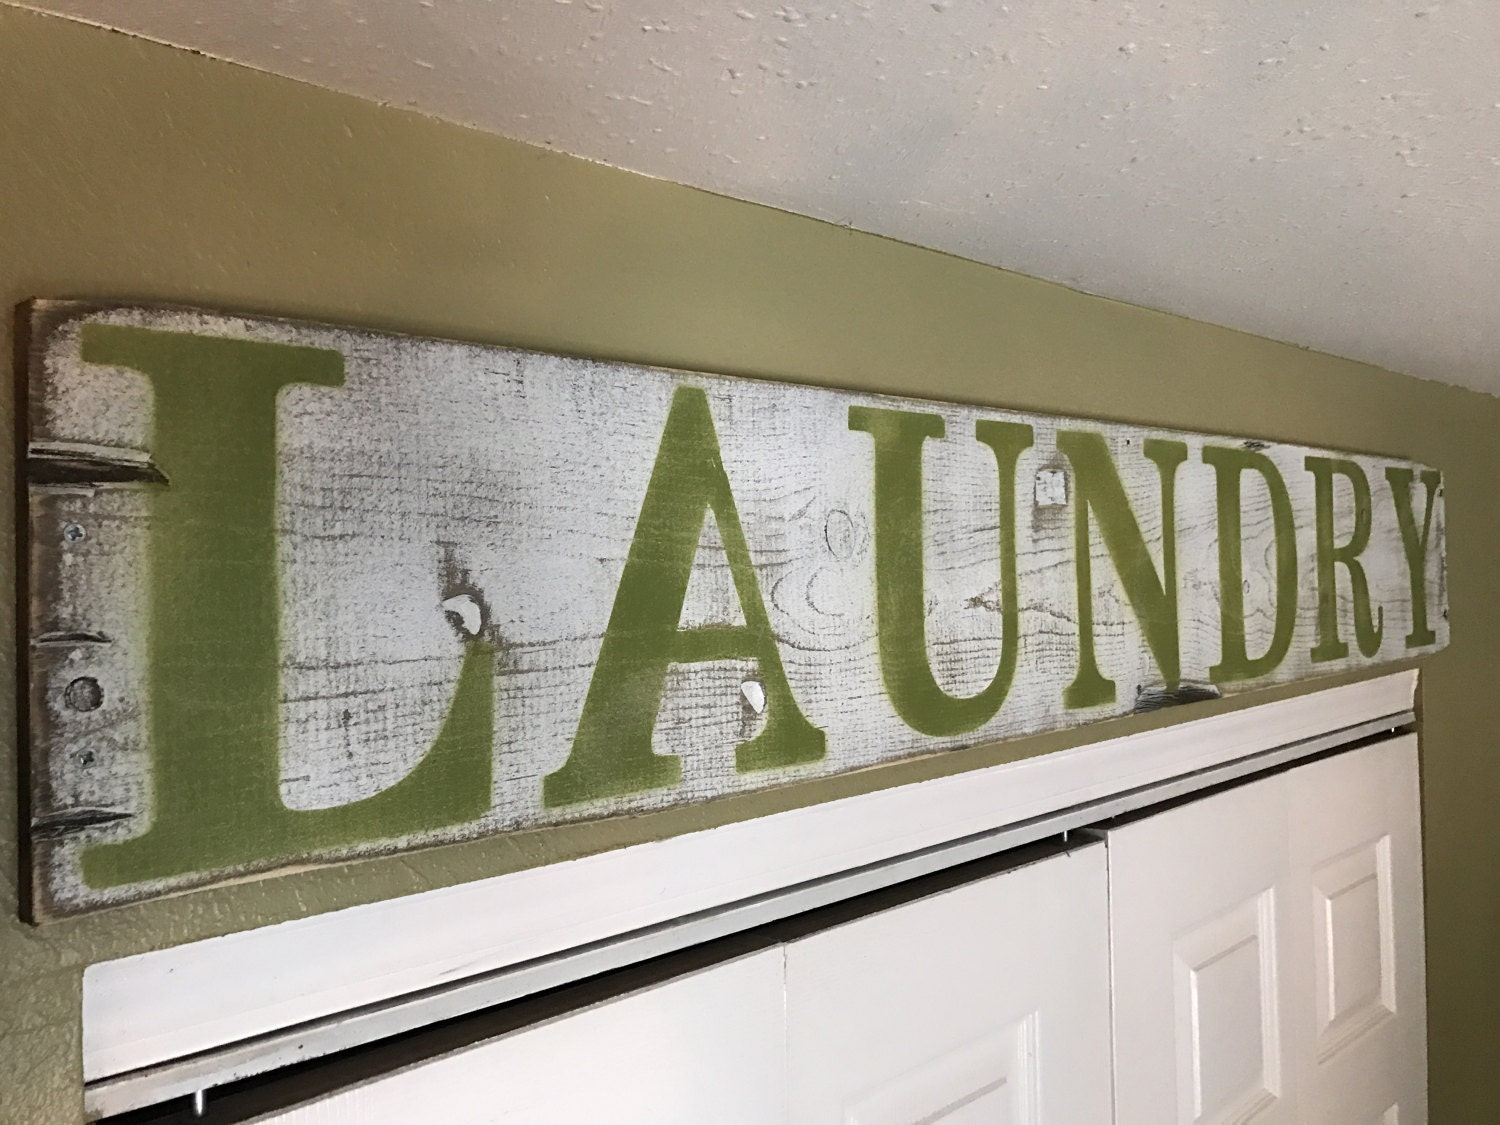 Vertical Laundry Sign Laundry Room Decor Laundry Decor Laundry Signs Laundry Room